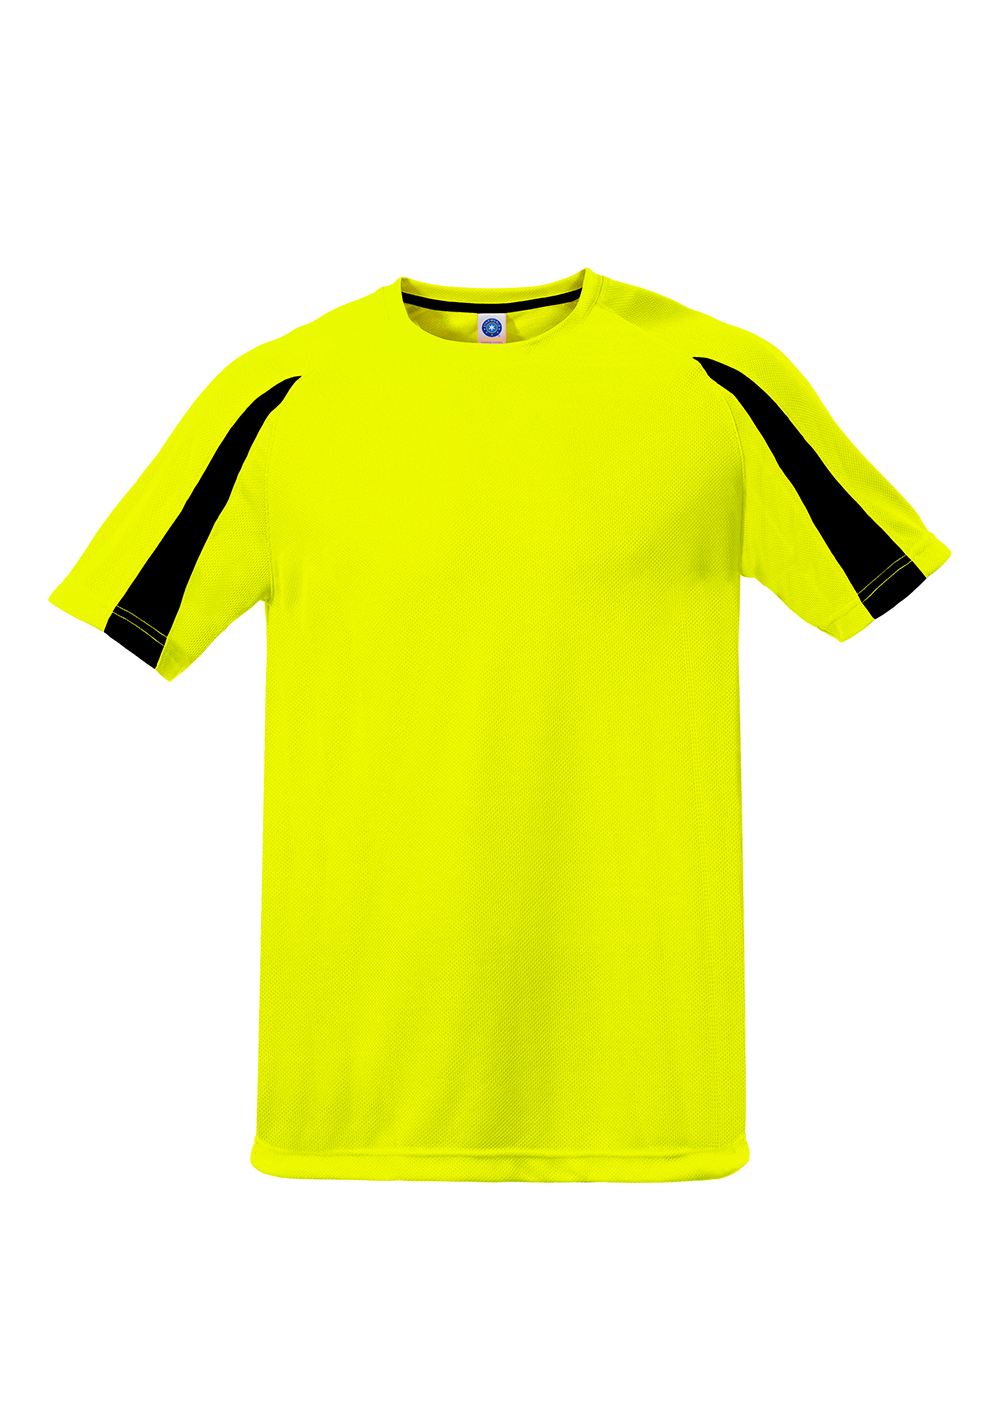 SW309-64-17-FLYellow-Black.png